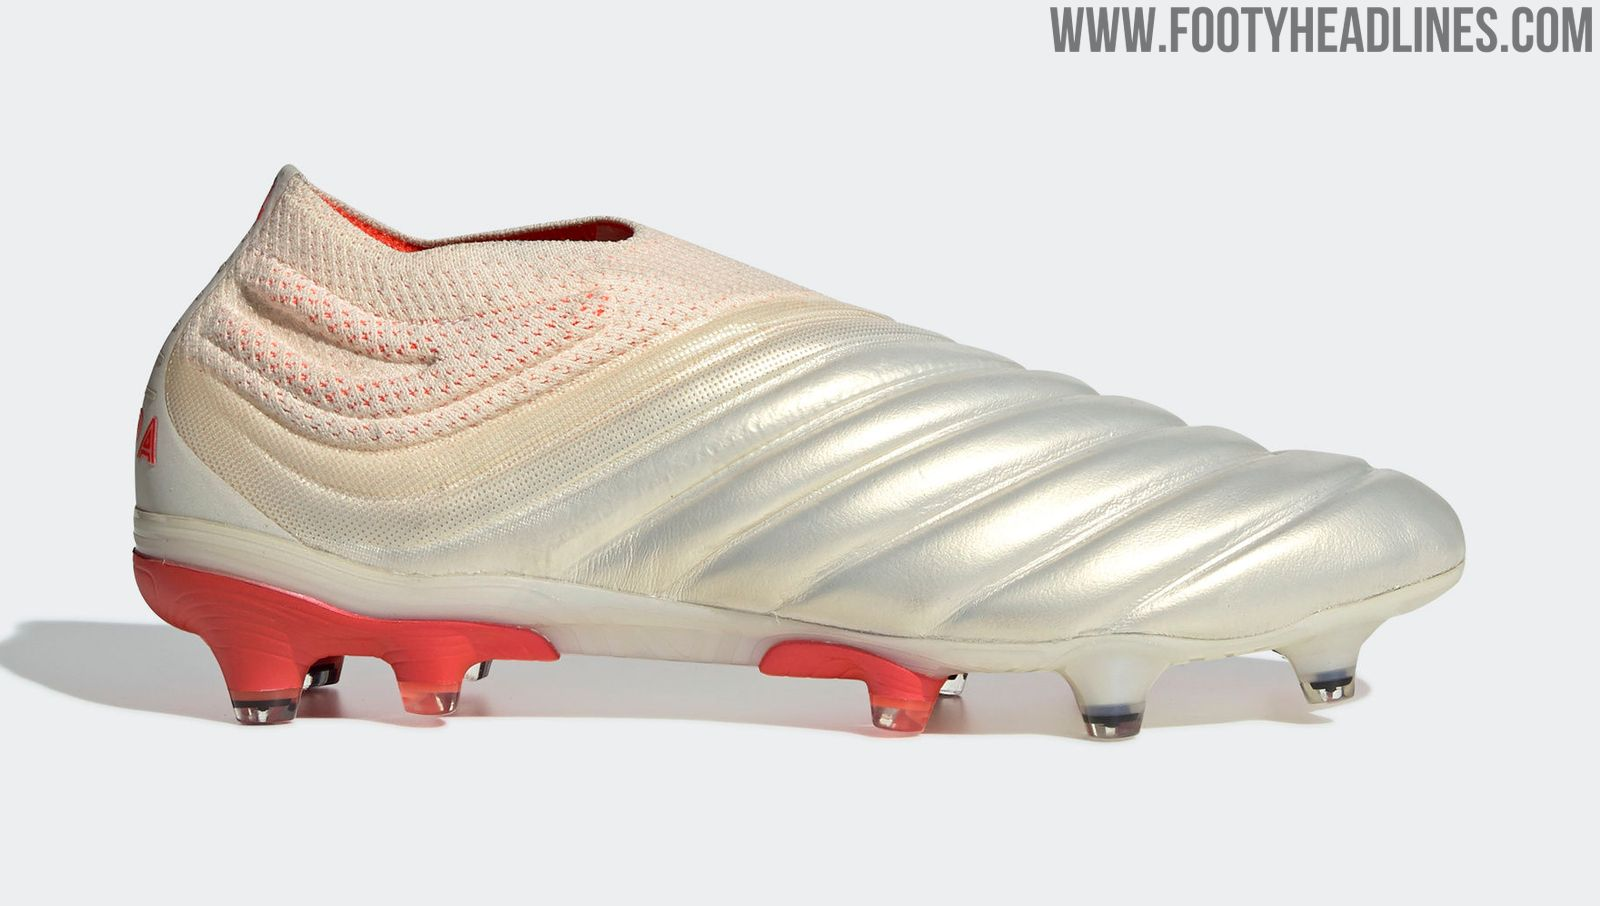 4aeaba84572 Here Are All 5 Adidas Copa 19+ Boots Leaked - Footy Headlines